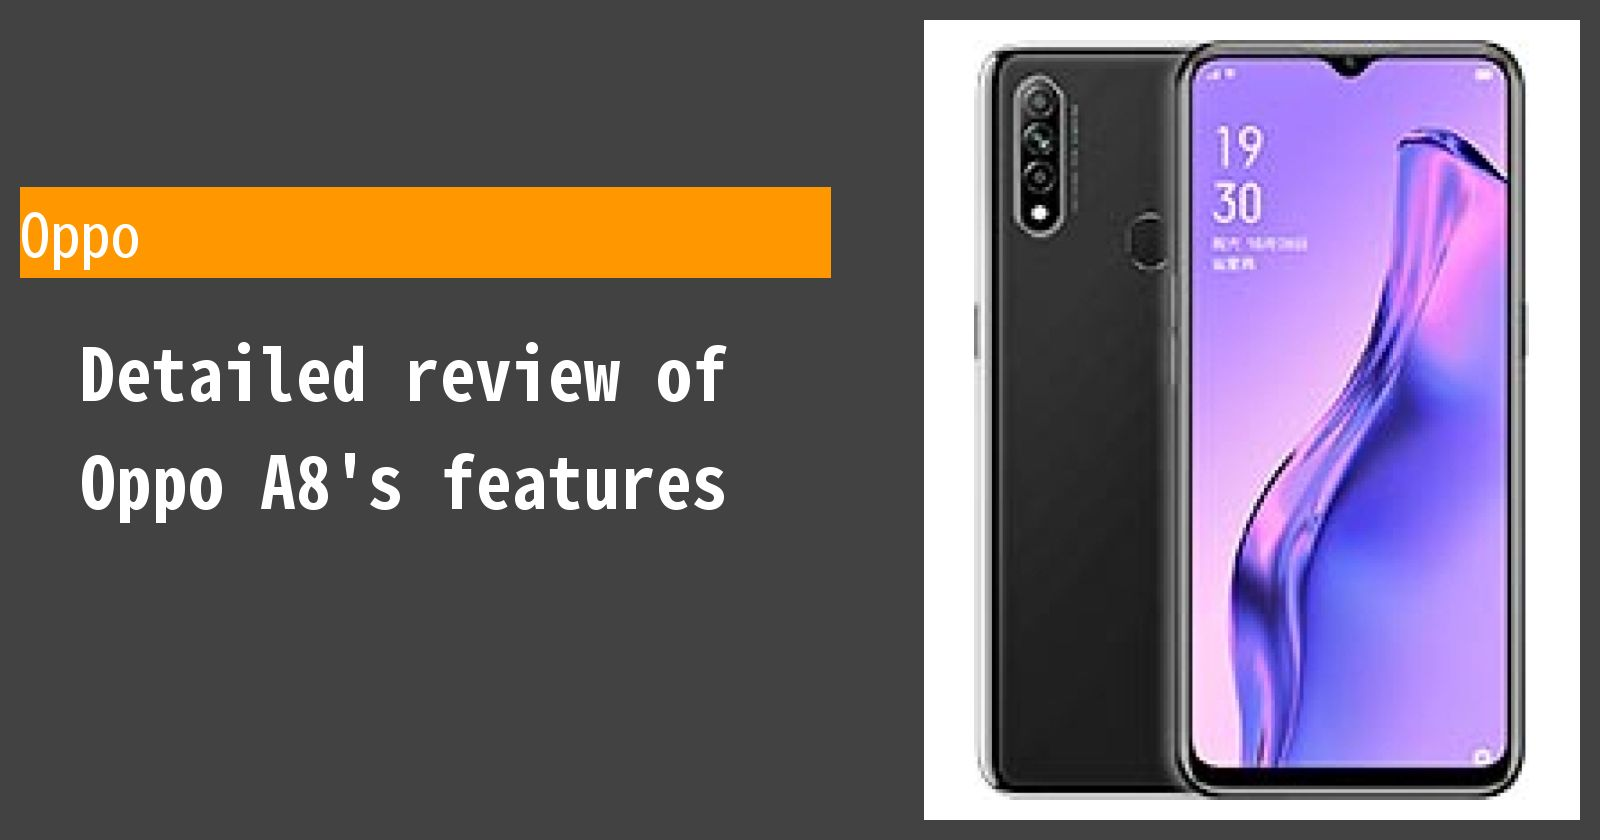 Detailed review of Oppo A8's features